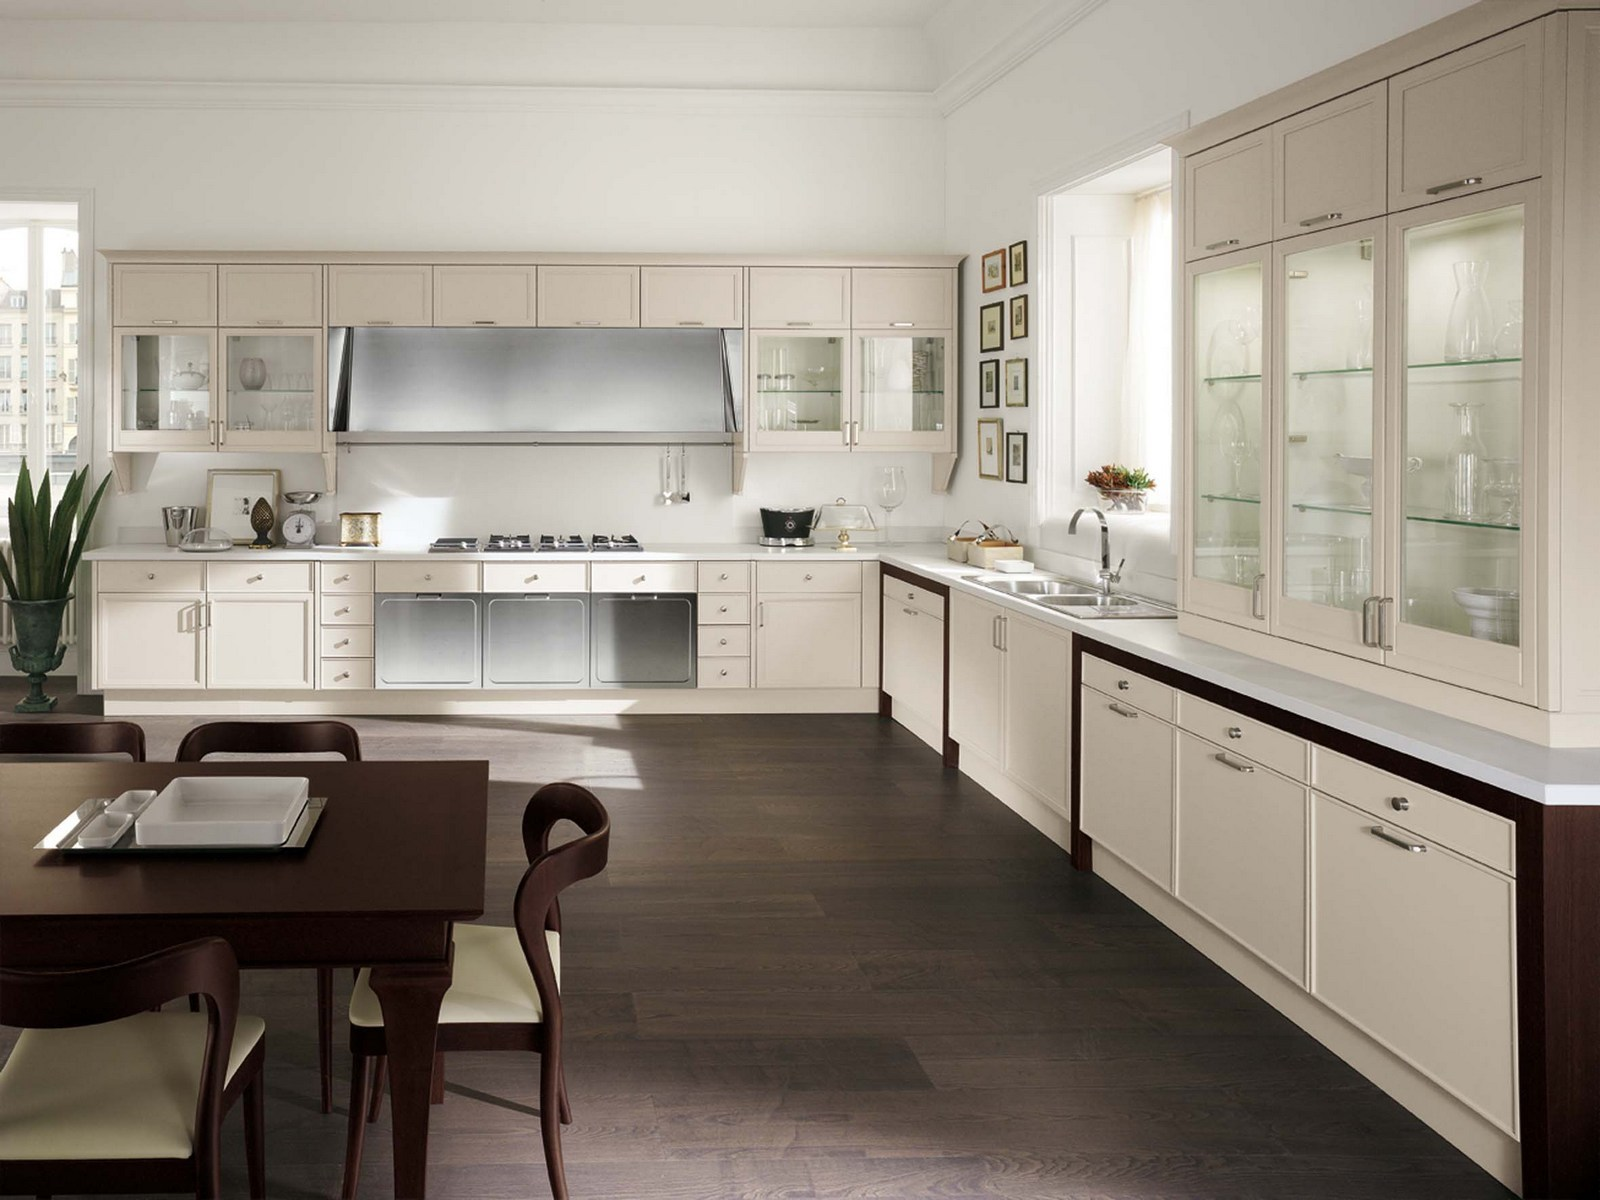 Avenue cuisine lin aire by aster cucine for Cuisine en lineaire